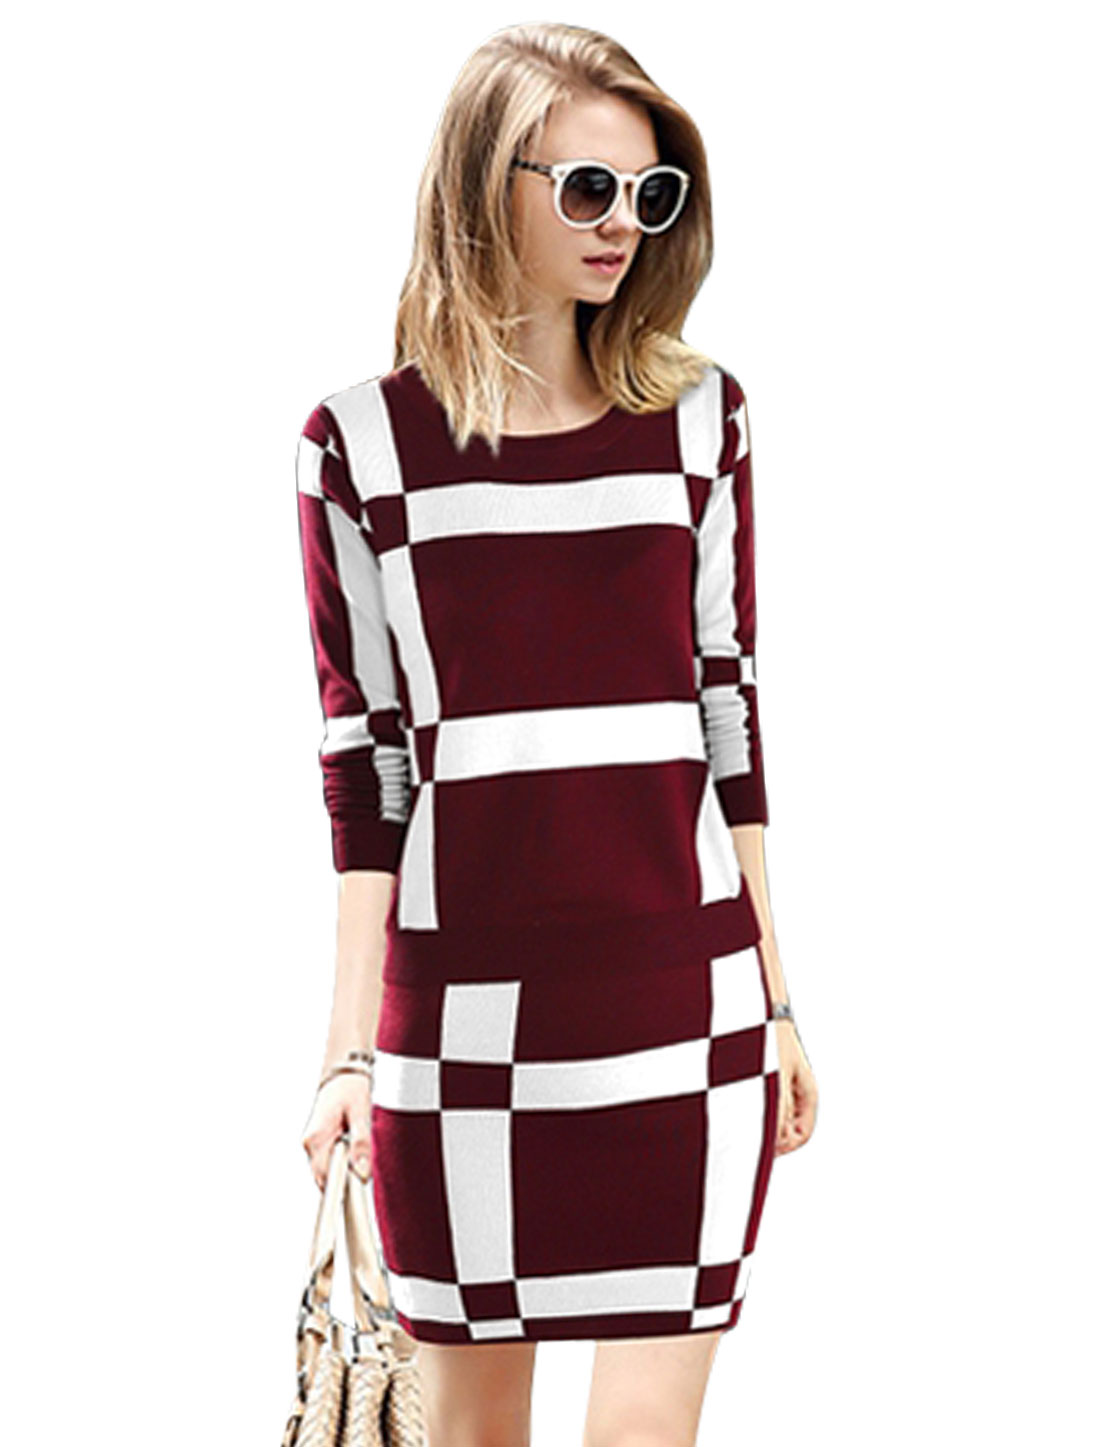 Women Checkered Pattern Knit Shirt w Elastic Waist Skirt Sets Burgundy White M